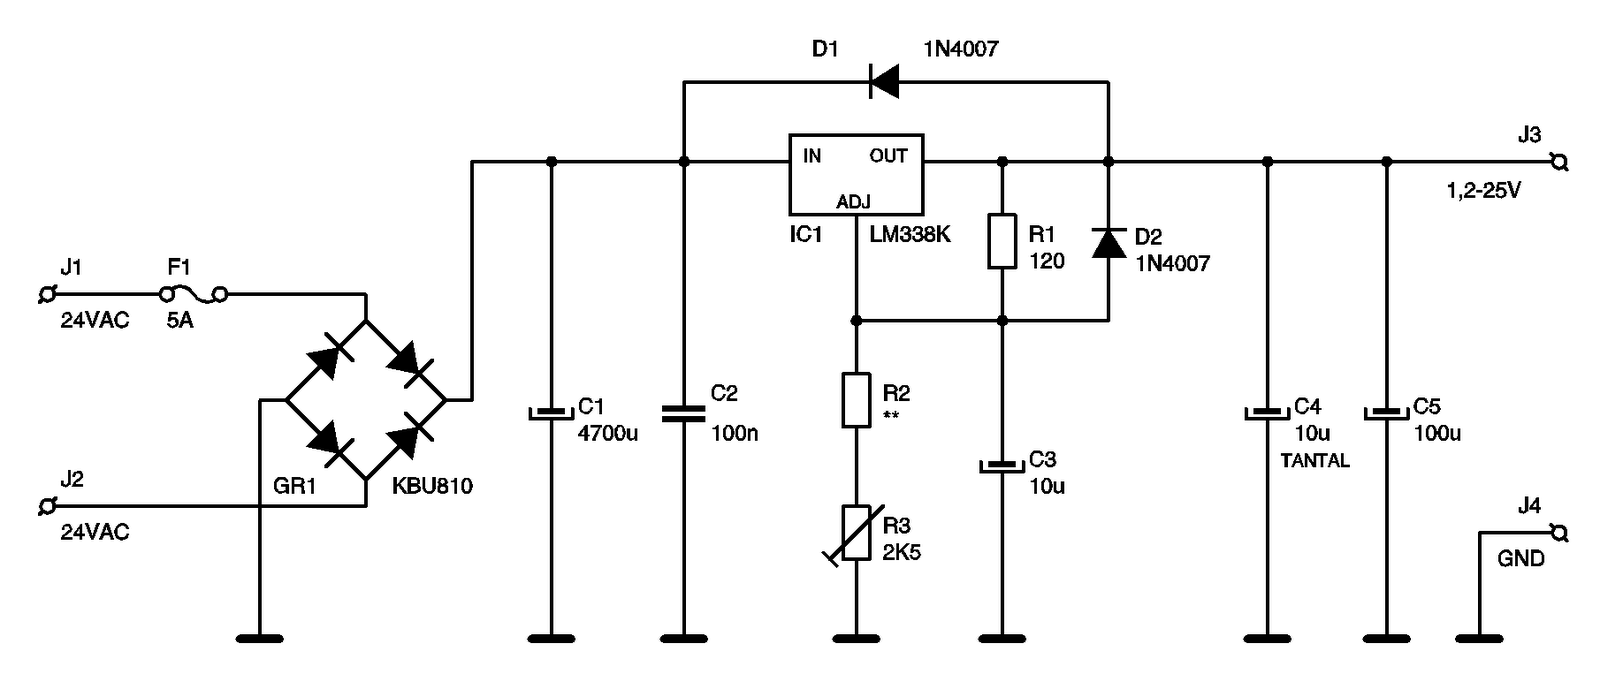 The core of the power supply circuit is LM338K. The scheme